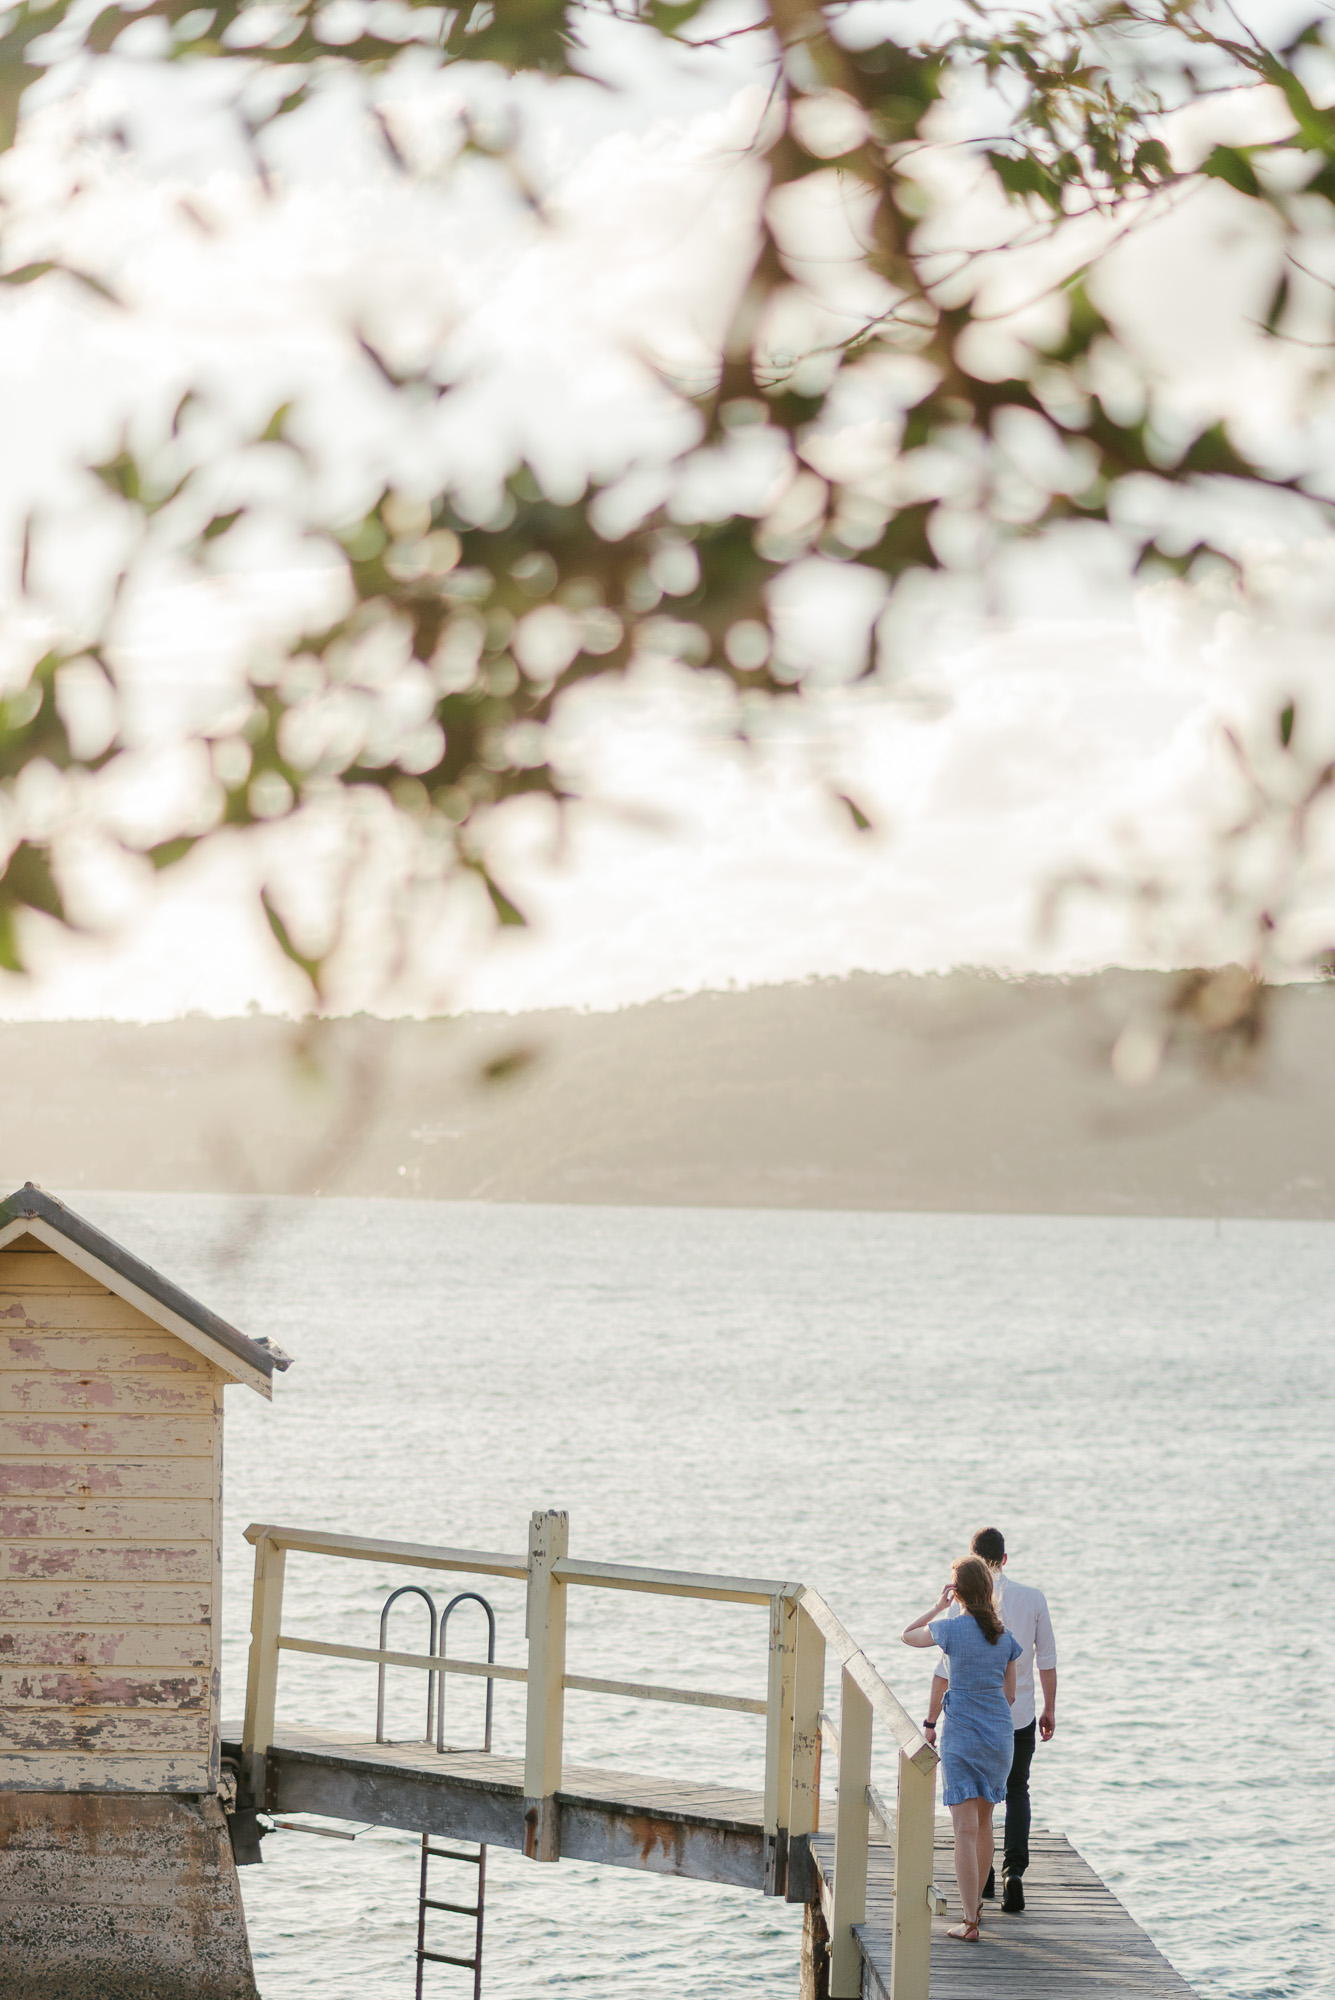 PhotographybyRenata_Proposal_Shoot_Watsons-Bay-Camp_Cove-310.JPG